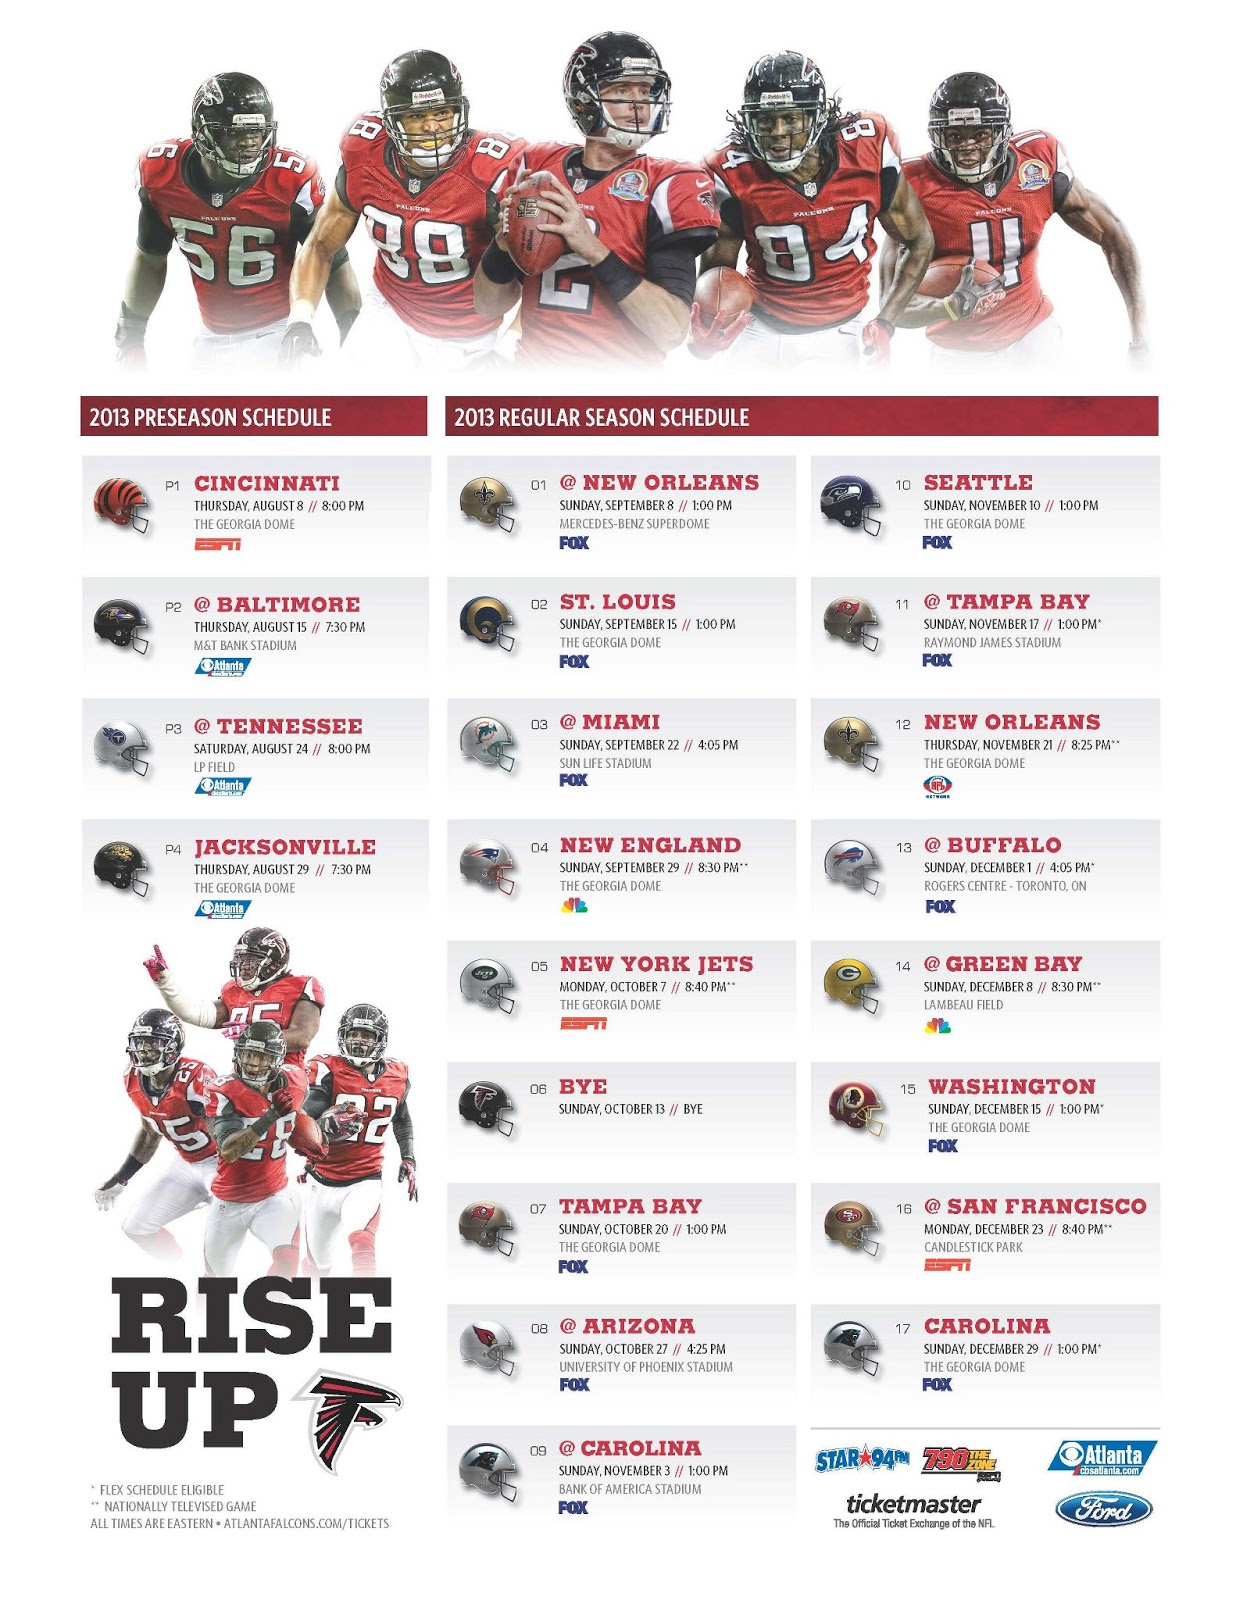 the 2013 atlanta falcons schedule #riseup - planet of the sanquon